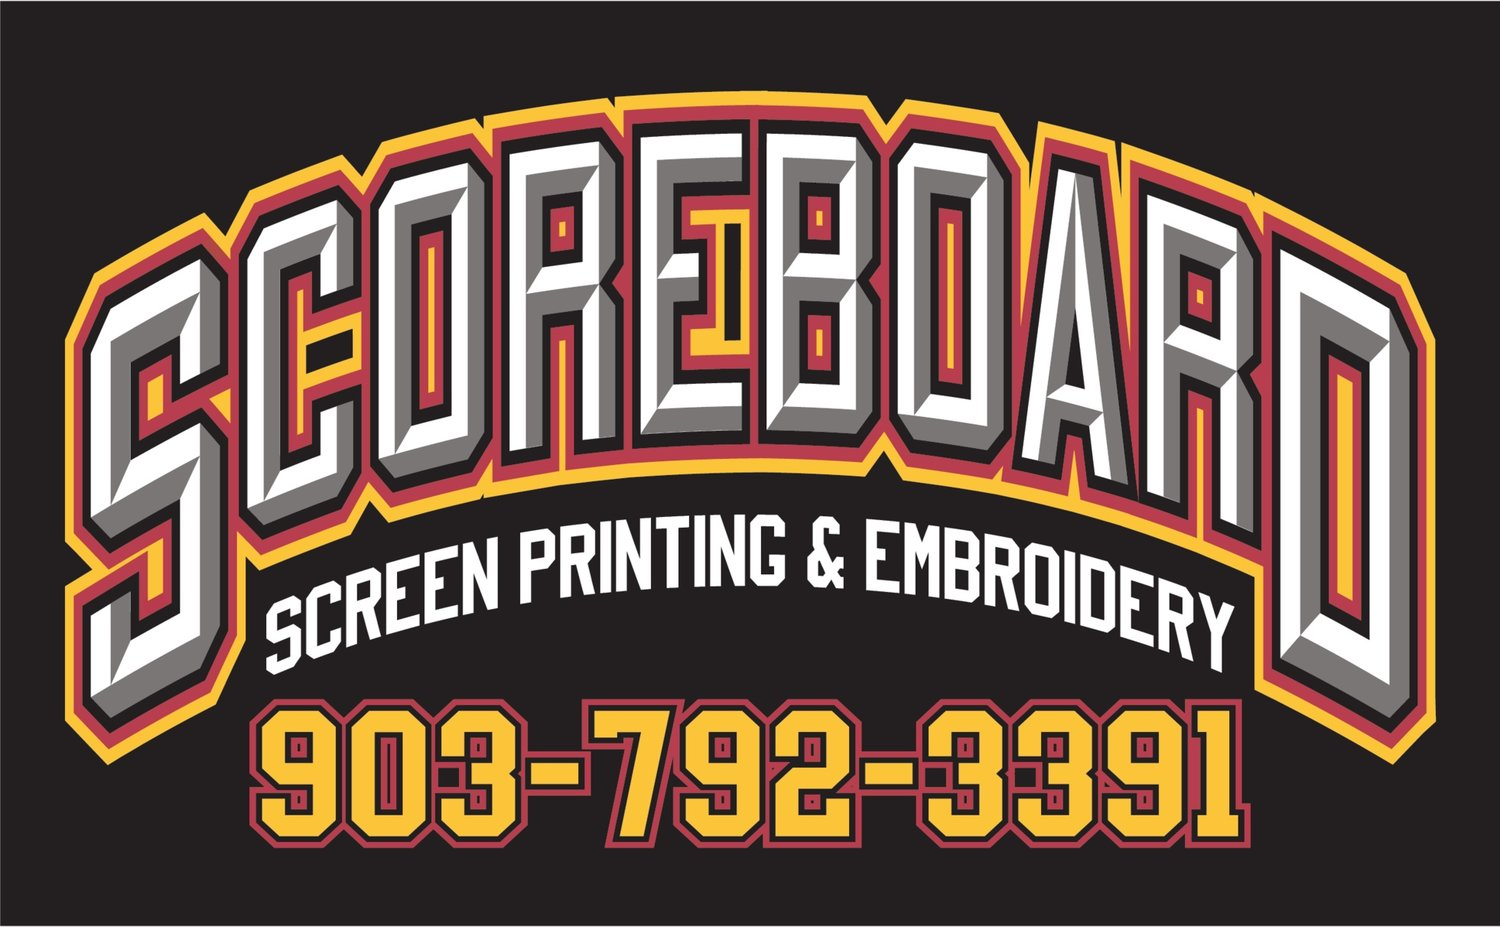 Texarkana, TX: Scoreboard Screen Printing & Embroidery